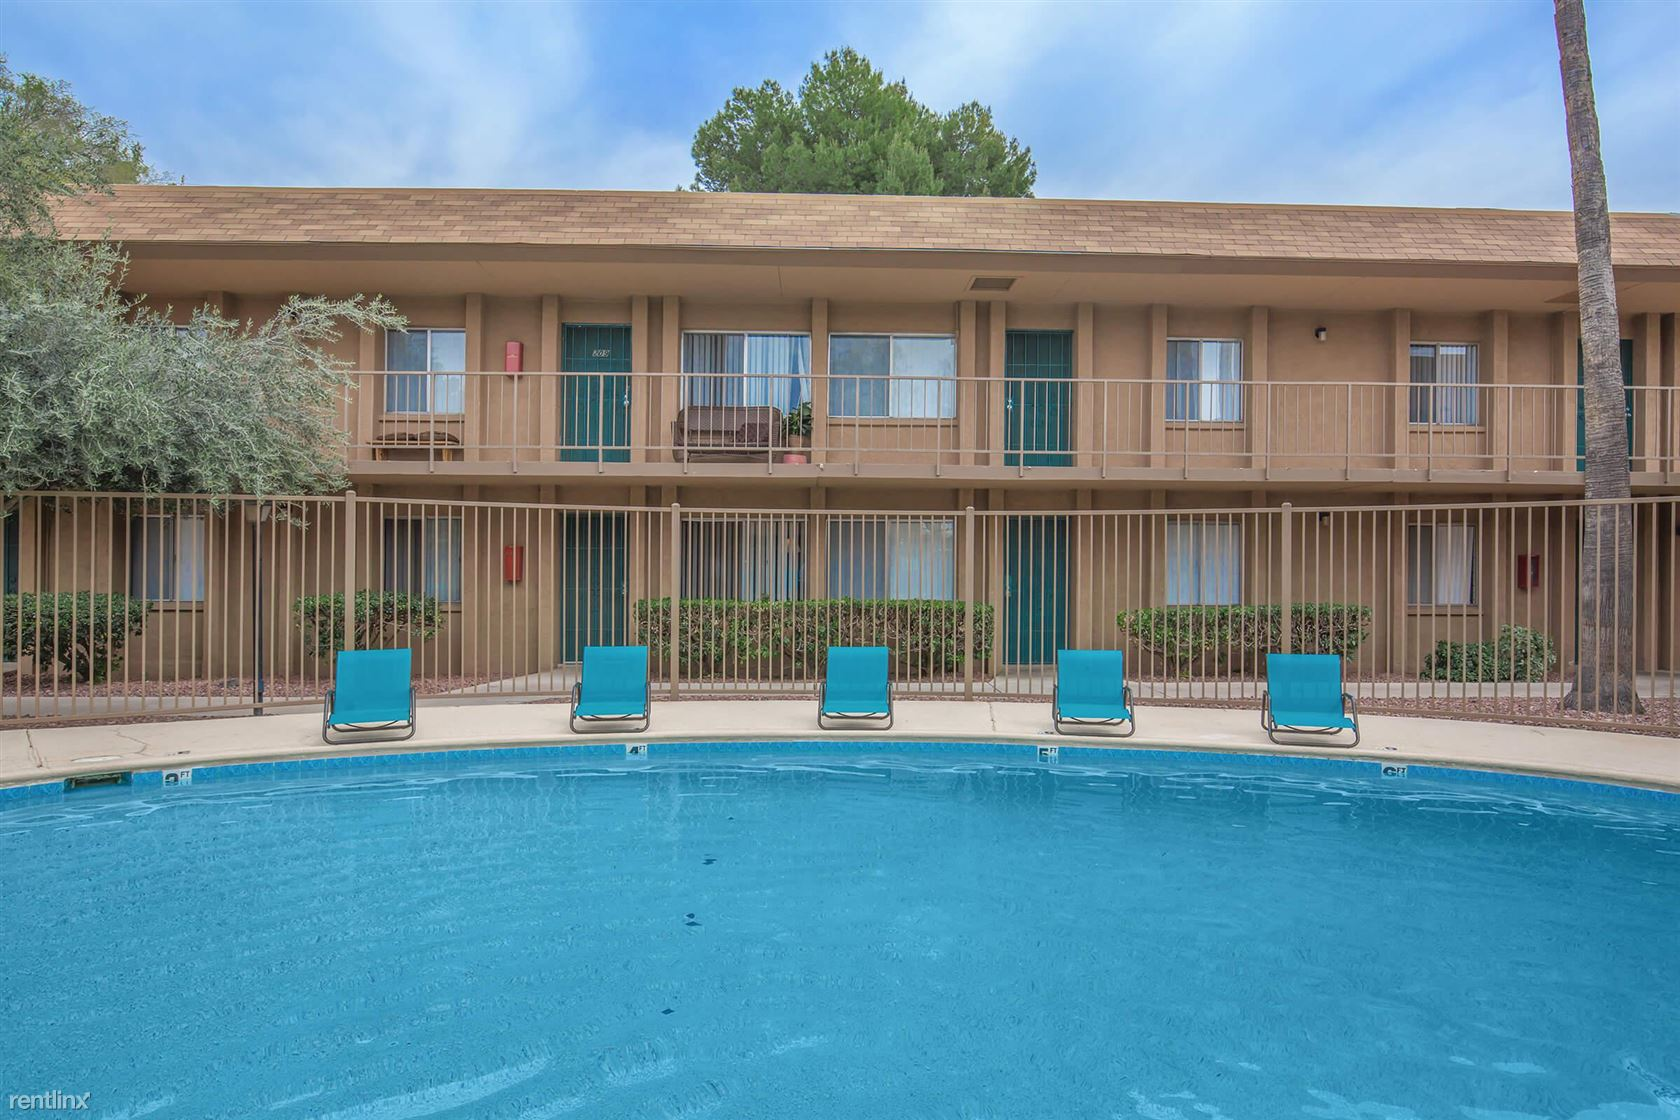 3041 N Country Club Rd - 655USD / month